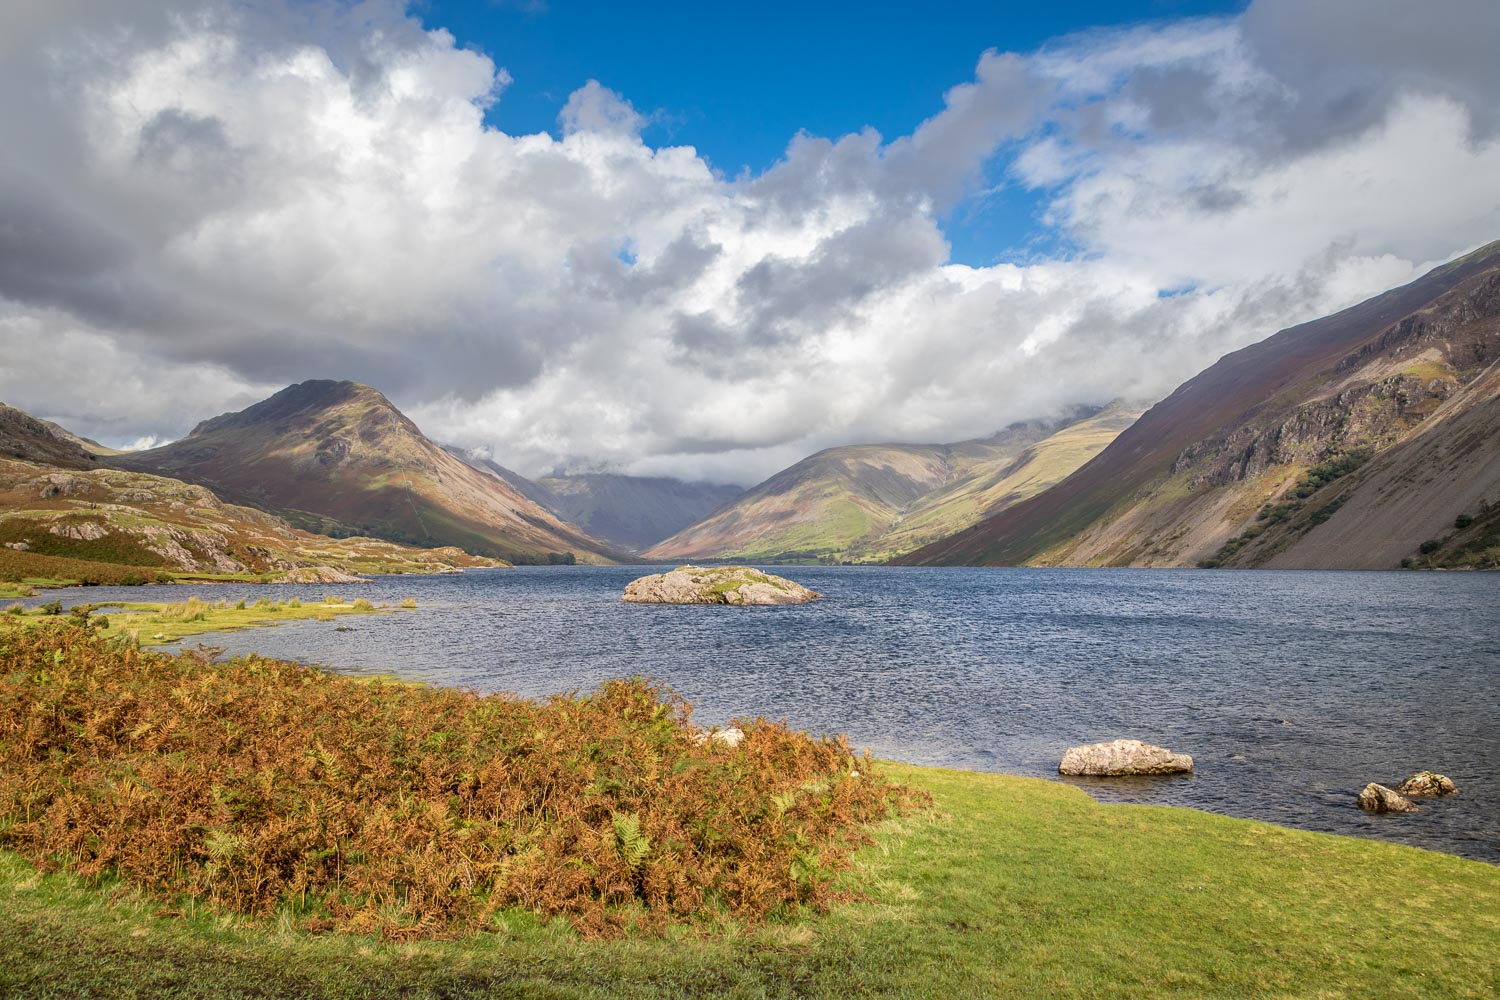 Wasdale Head view, Wastwater view